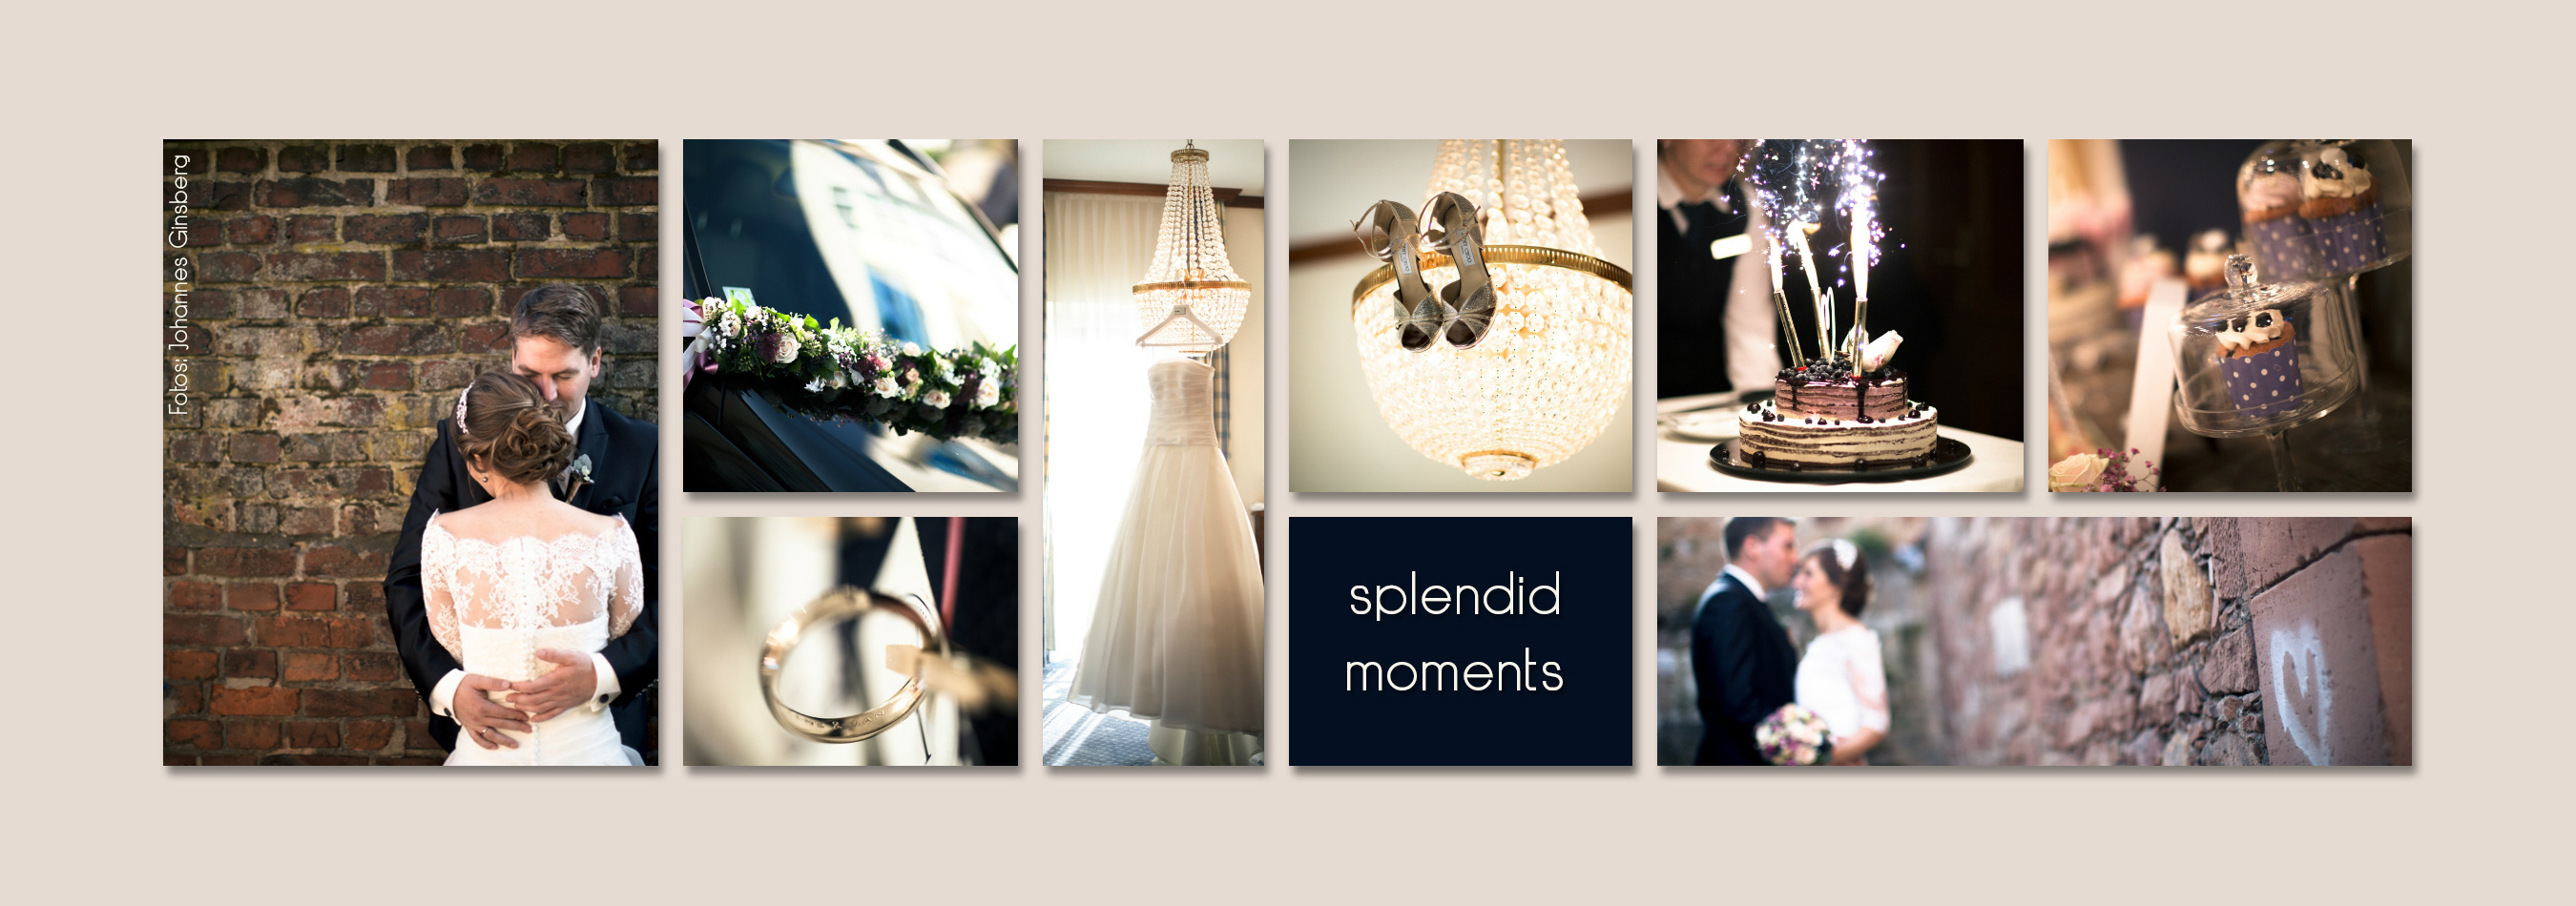 01_splendid-moments.jpg